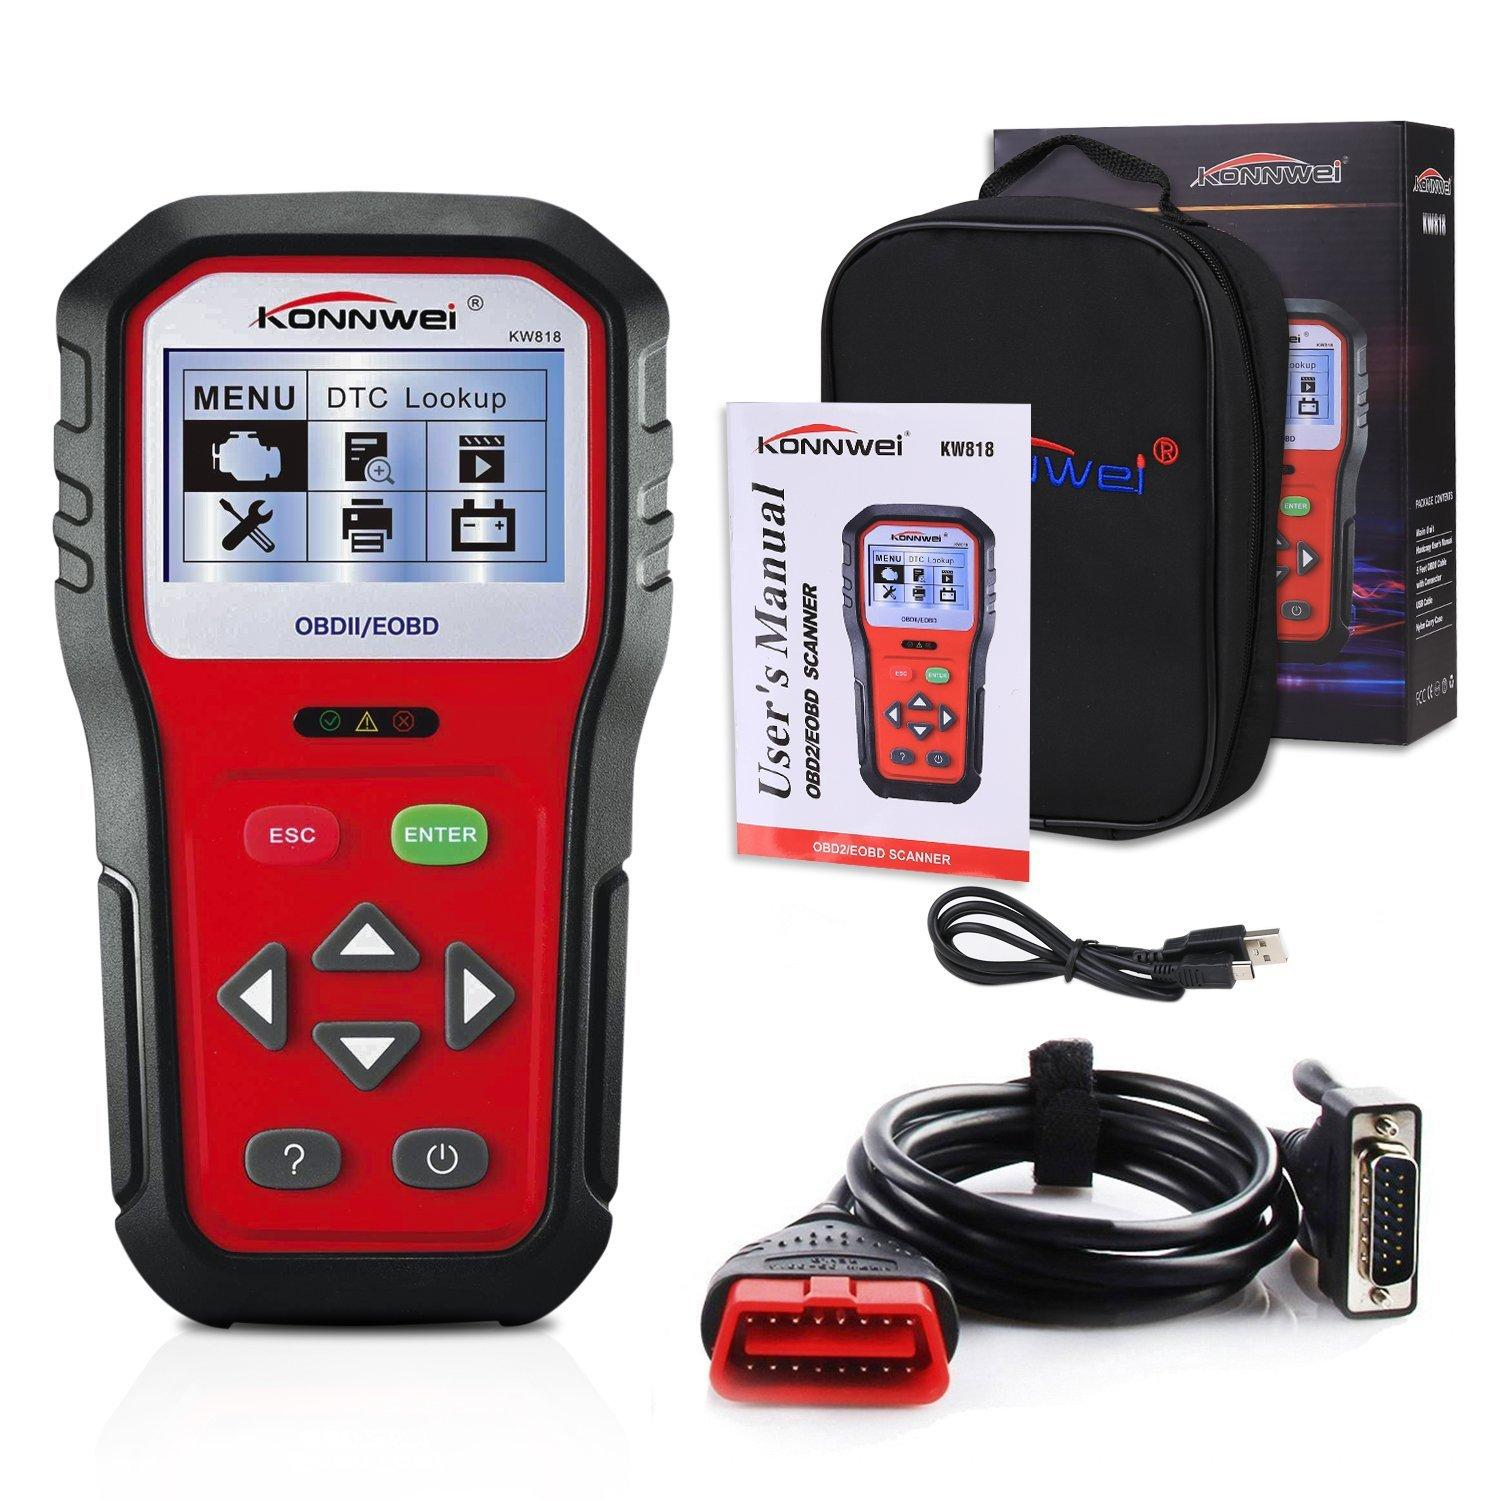 2018 OBD2 Car Diagnostic Scanner,KW818 Universal Car Code Reader Vehicle  Diagnostic Tool,Check Engine Light Code Reader For All Cars Since 1996 From  Laminc, ...